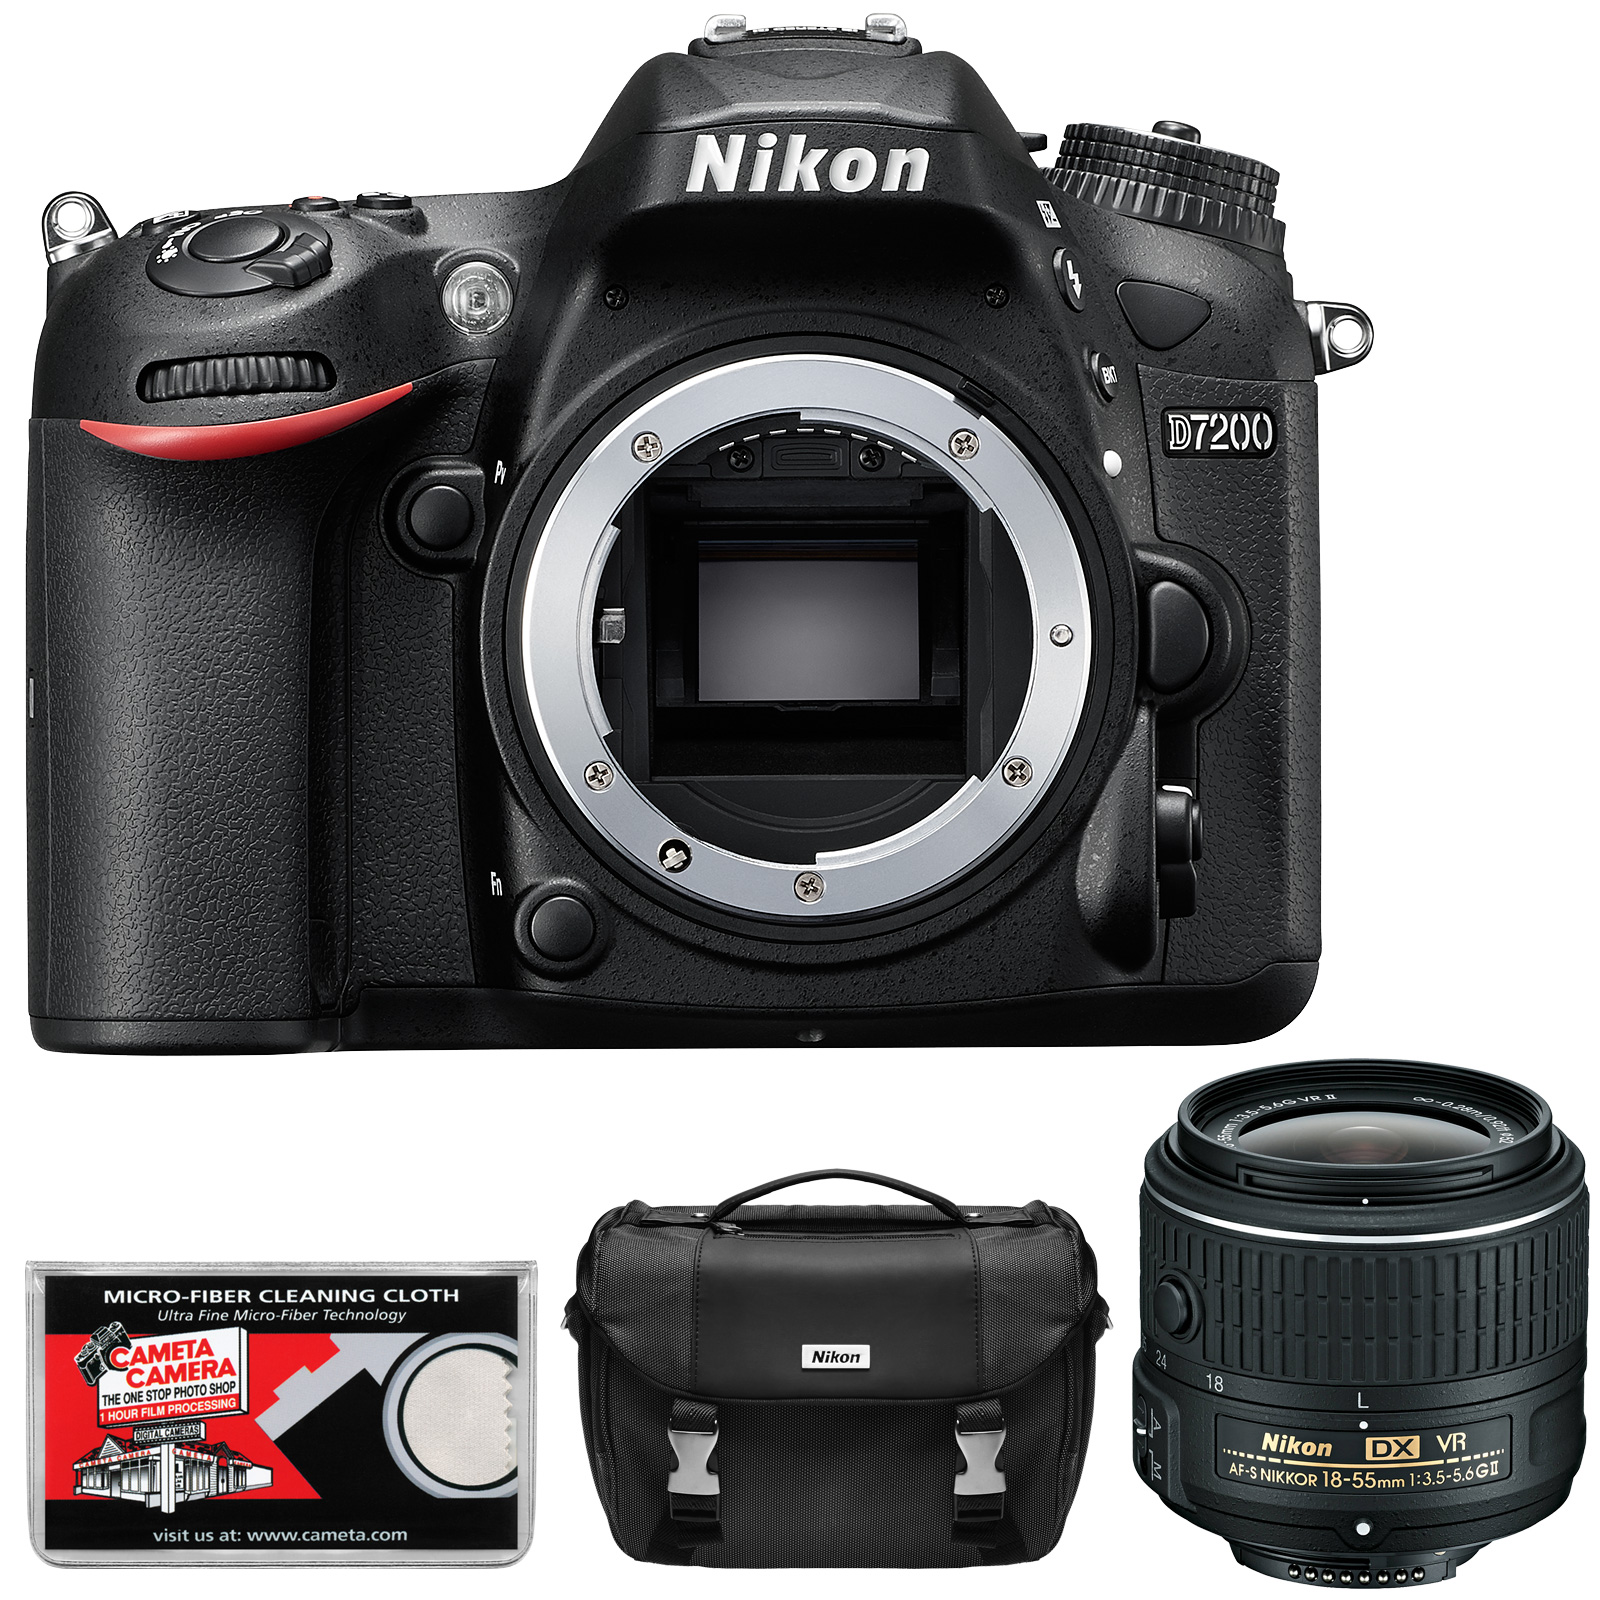 Nikon D7200 Wi-Fi Digital SLR Camera Body - Factory Refurbished with 18-55mm VR II Zoom Lens + Case + Kit